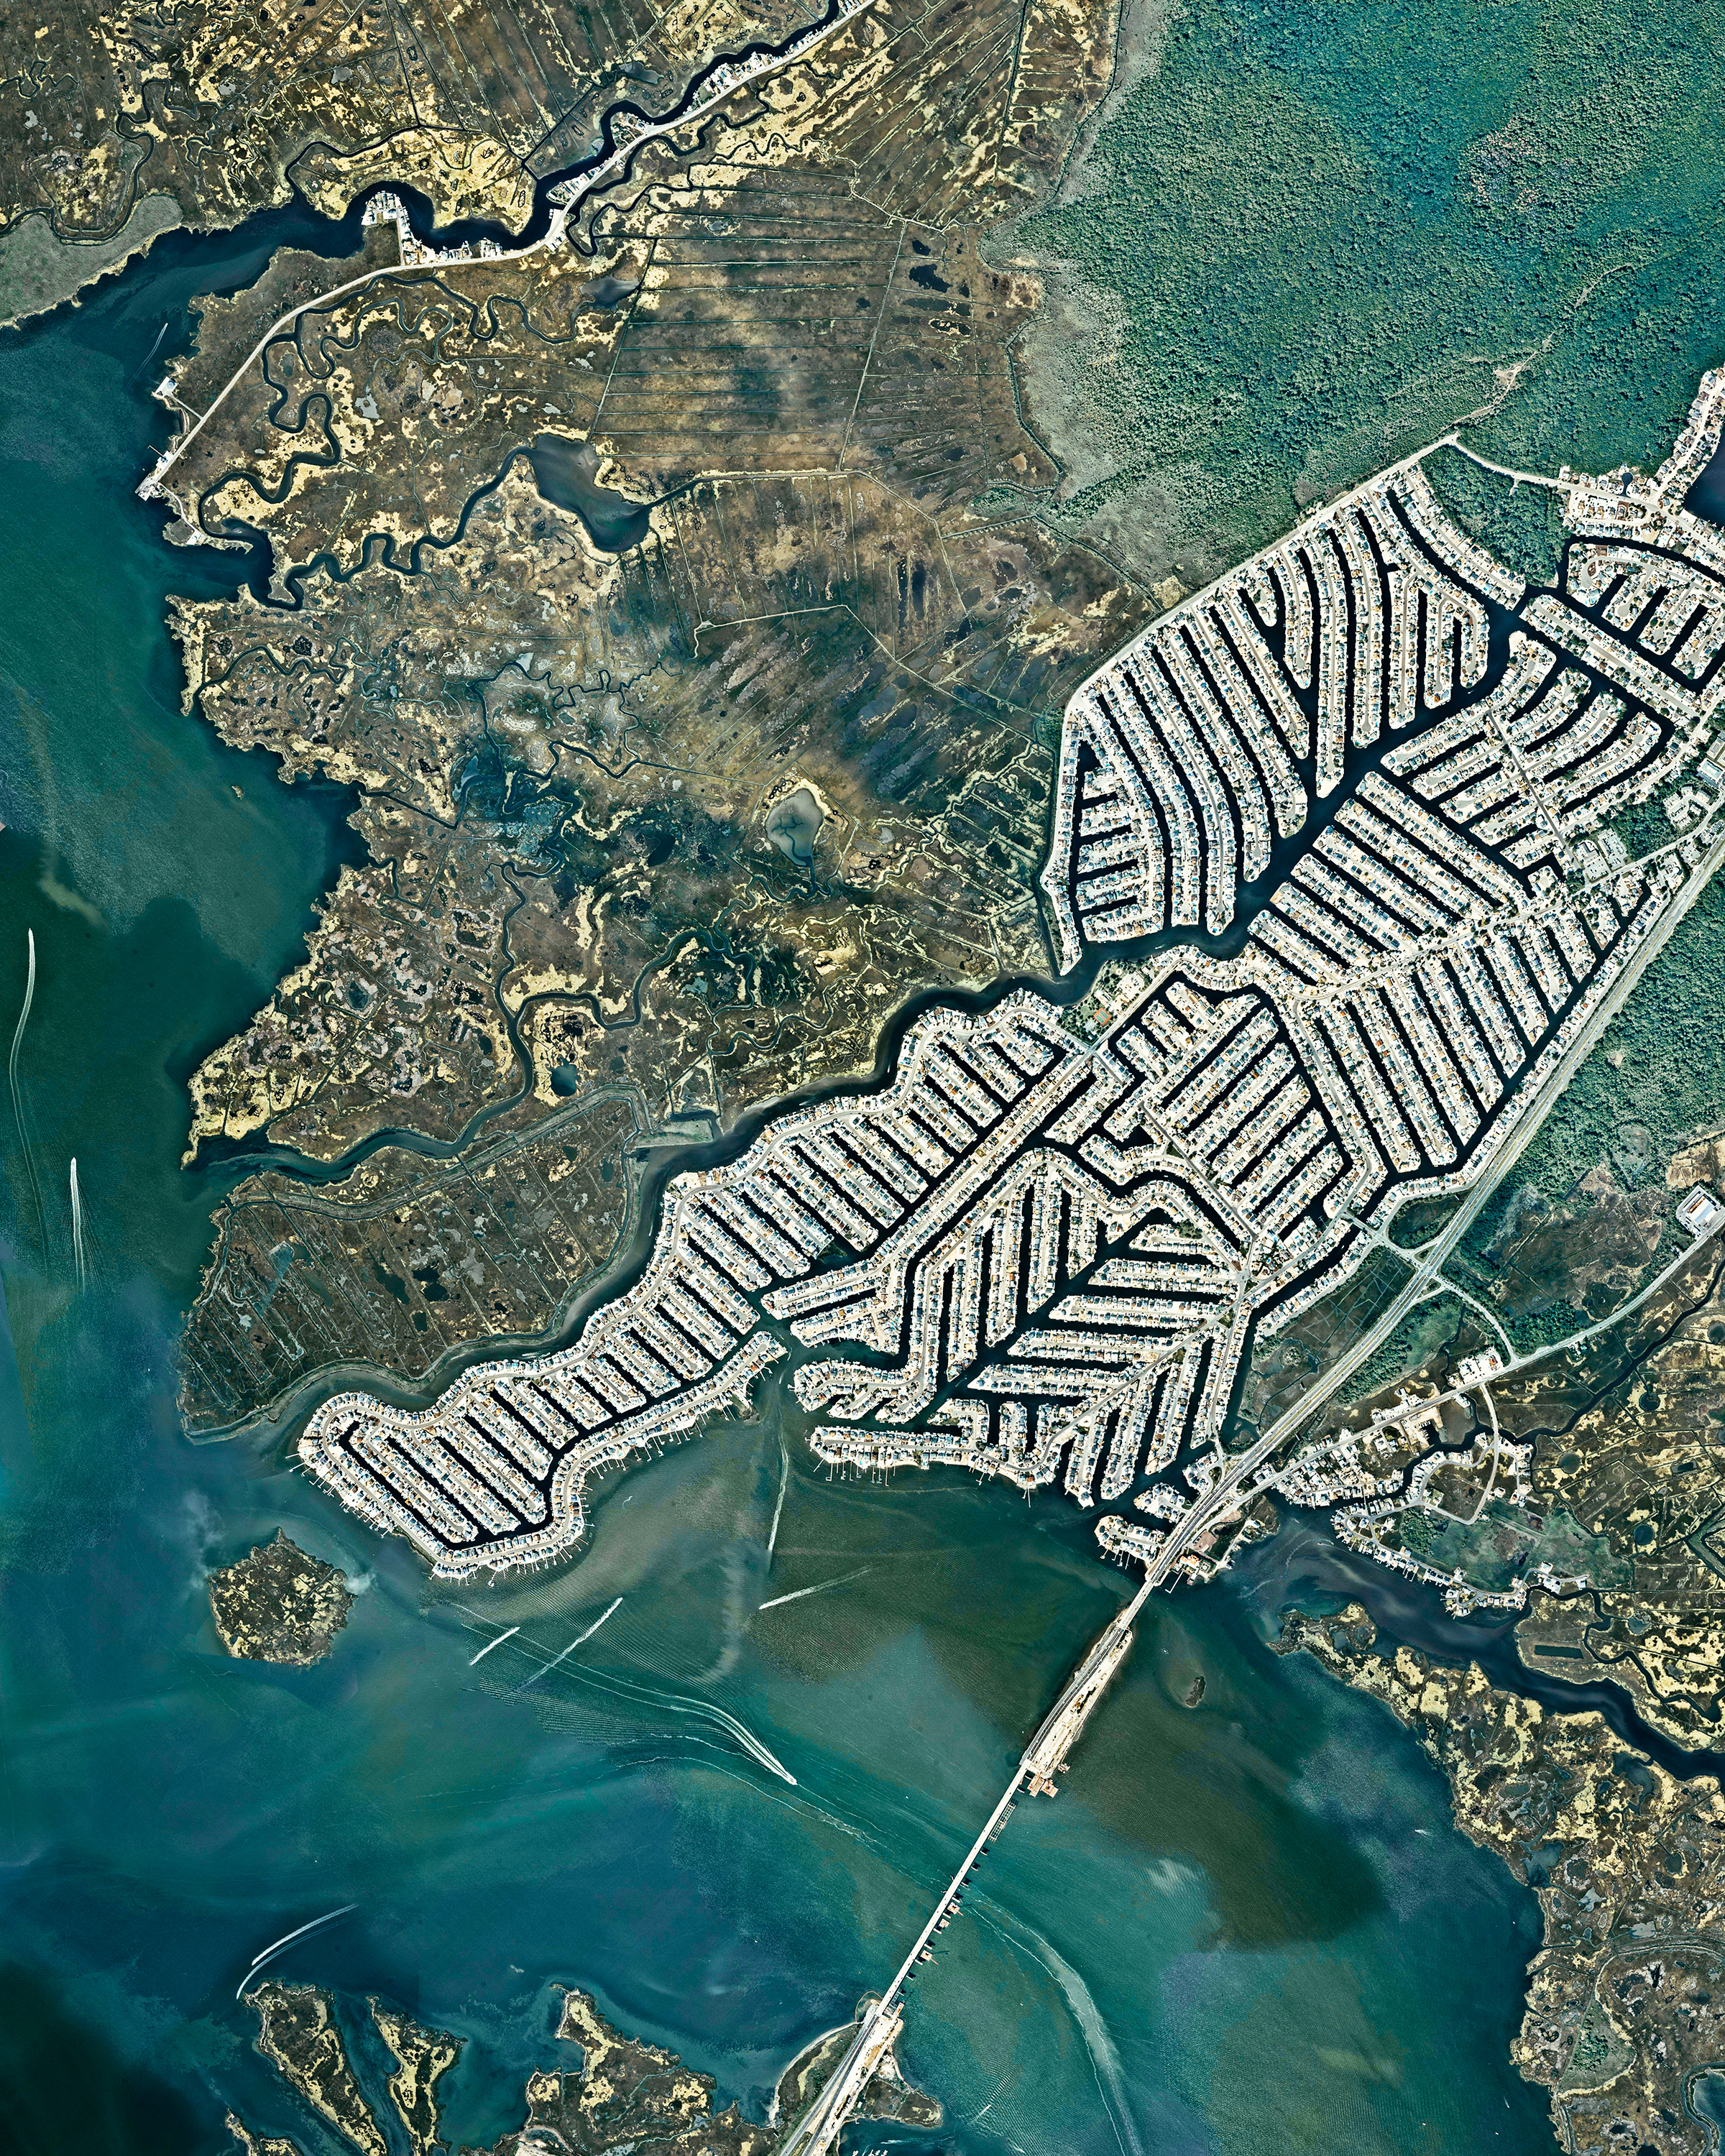 "Beach Haven West is an unincorporated community and census-designated place in Stafford Township, New Jersey. The neighborhood, which has about 3,900 residents, was built upon salt marshes beginning in the 1950s. Looking at this Overview, it is evident that Beach Haven West was supposed to continue growing; however, a lack of permits from the Environmental Protection Agency and the Wetlands Protection Act of 1970 prevented it from expanding further across the Mill Creek delta.  39°40'13.5""N, 74°13'59.2""W  Source imagery: Nearmap"